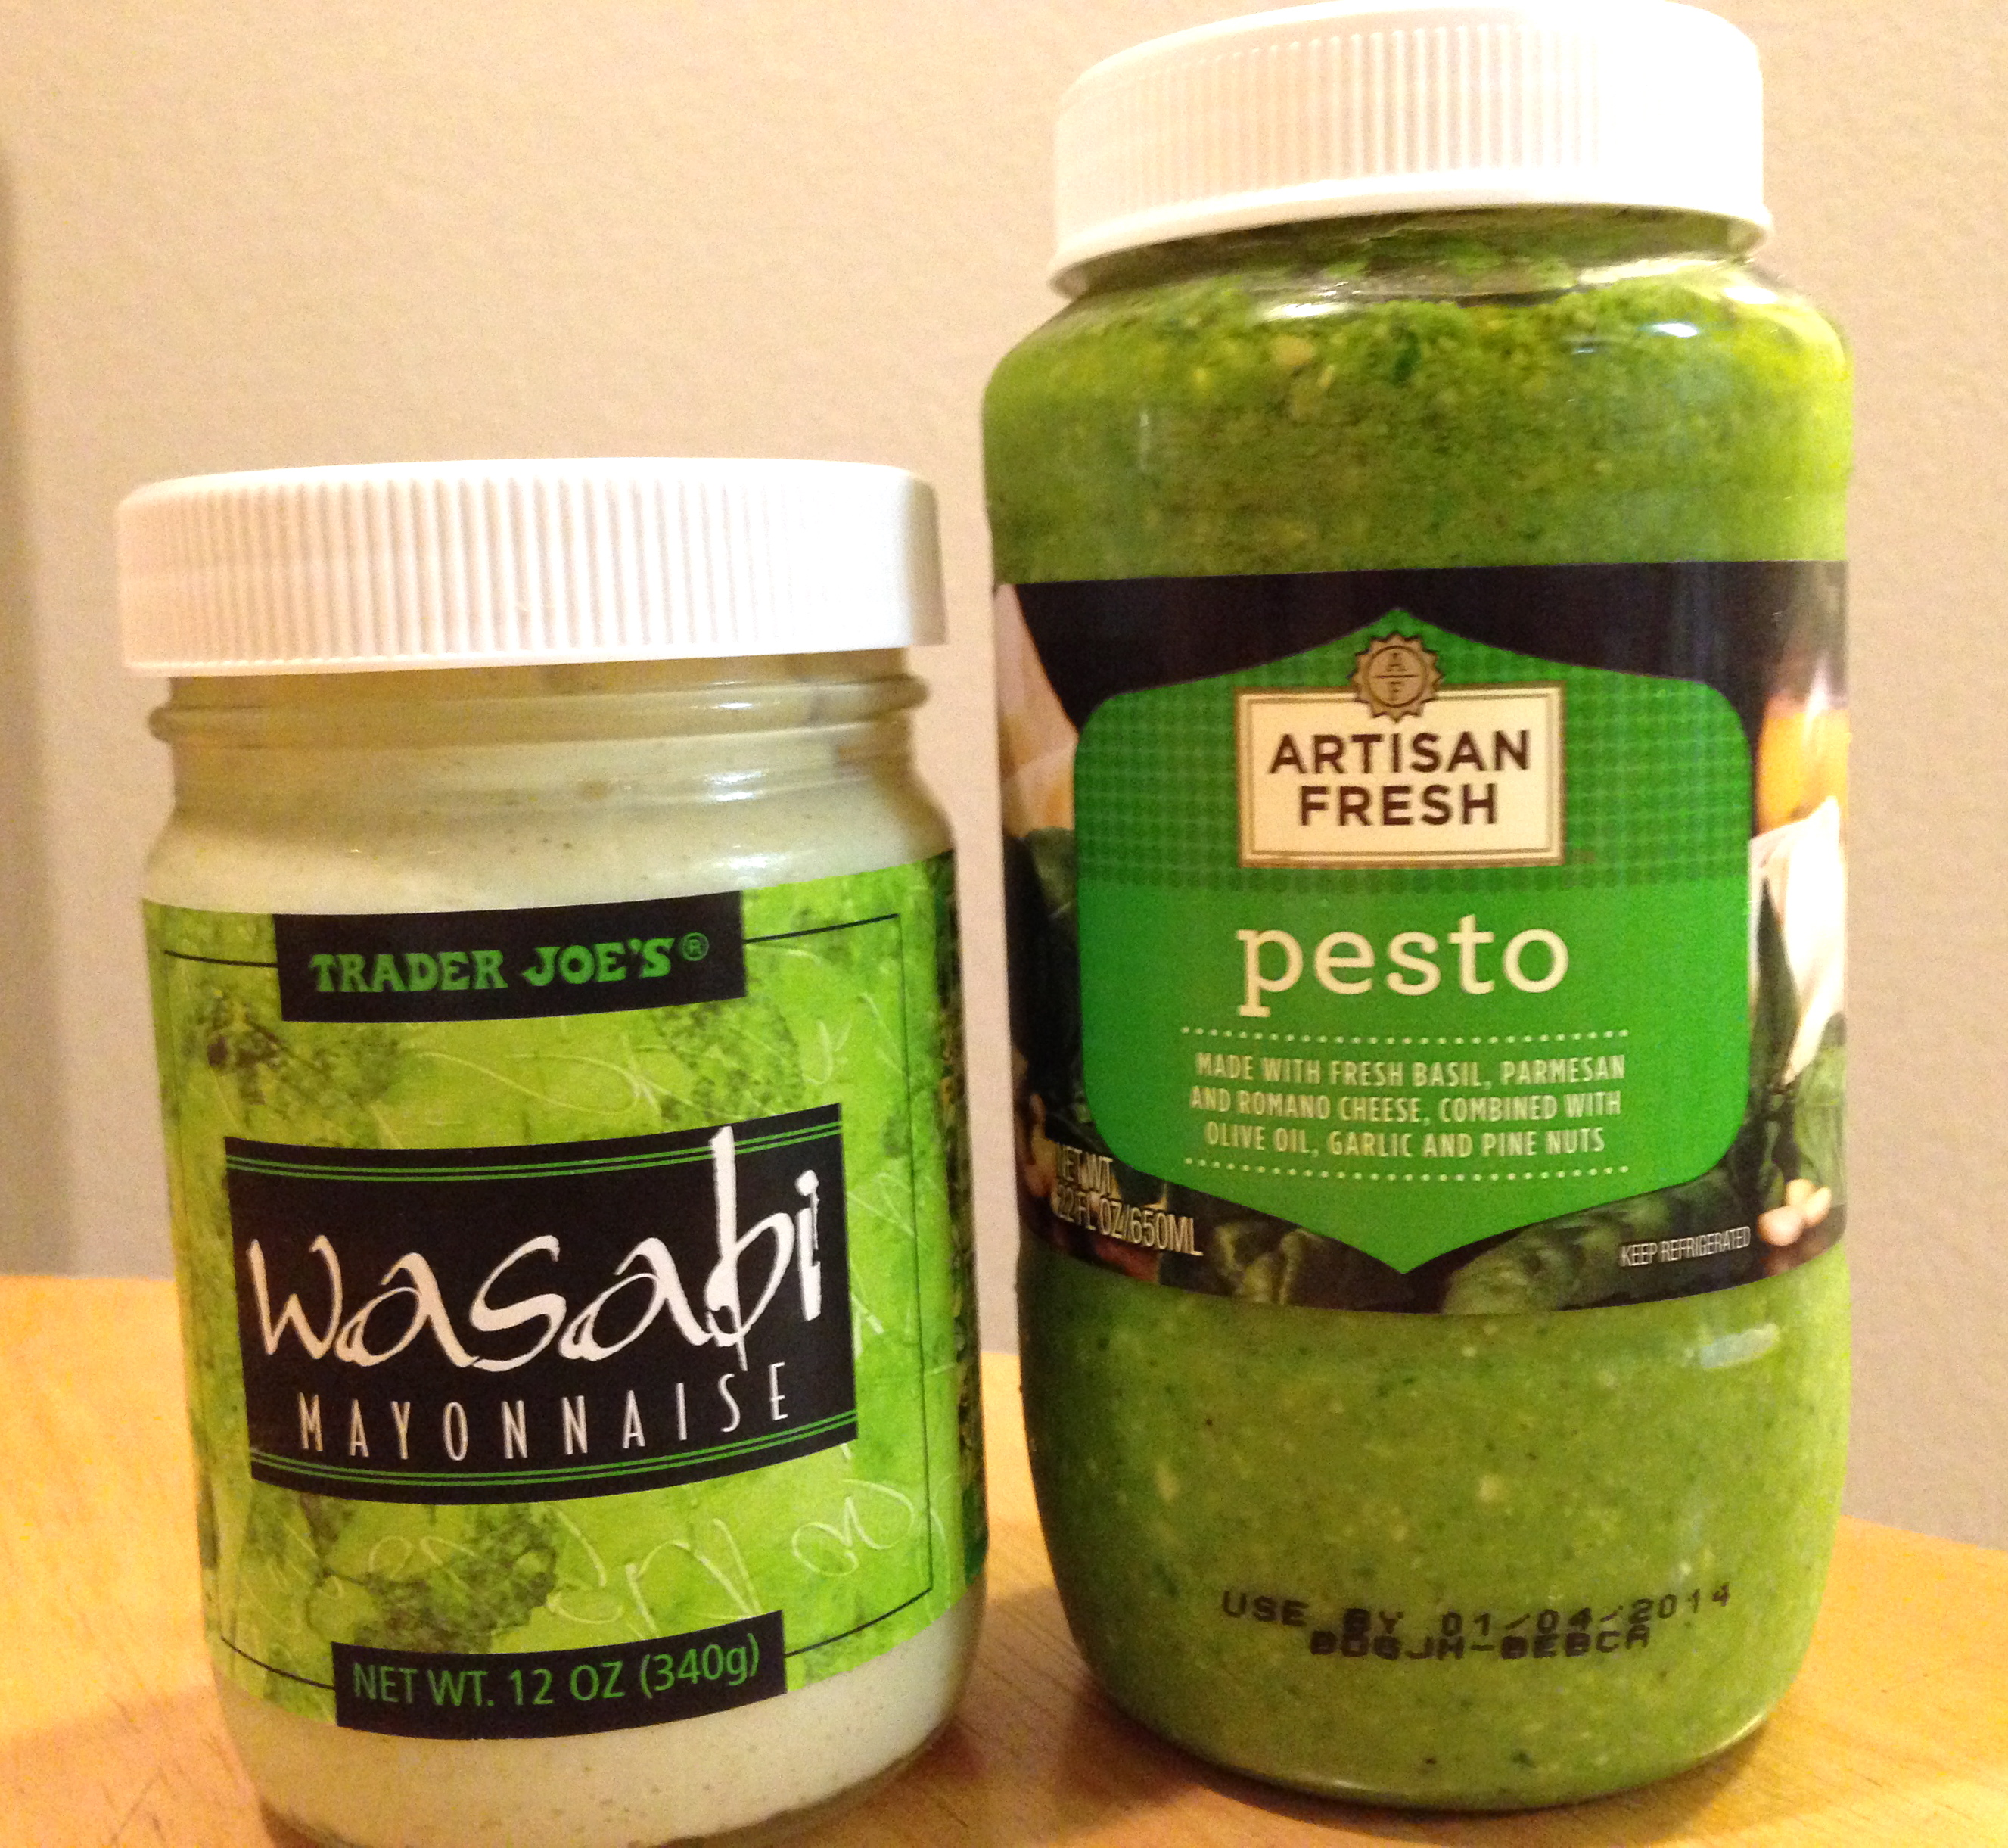 now to the sauce! i must say, wasabi mayo and pesto = an amazing ...